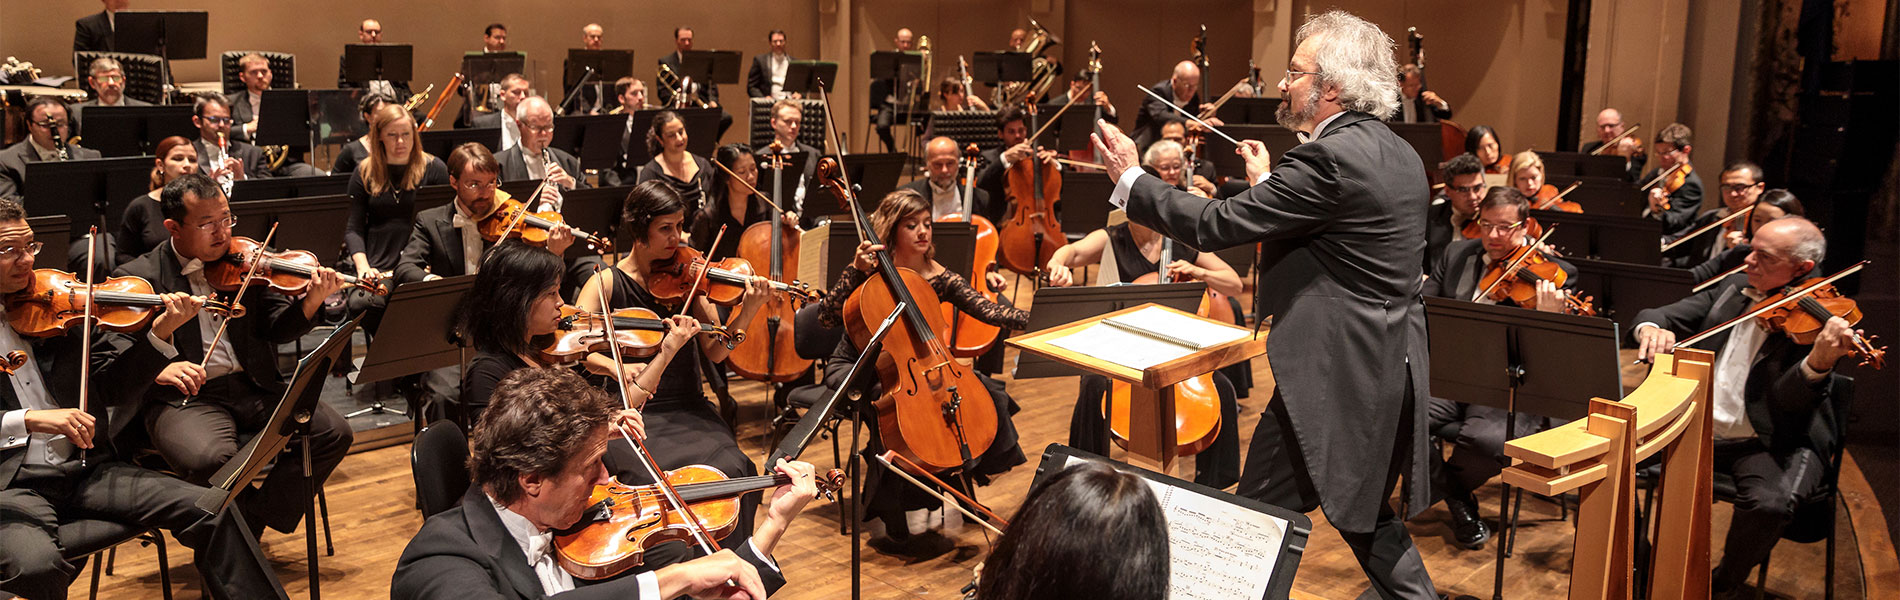 oregon symphony careers auditions employment